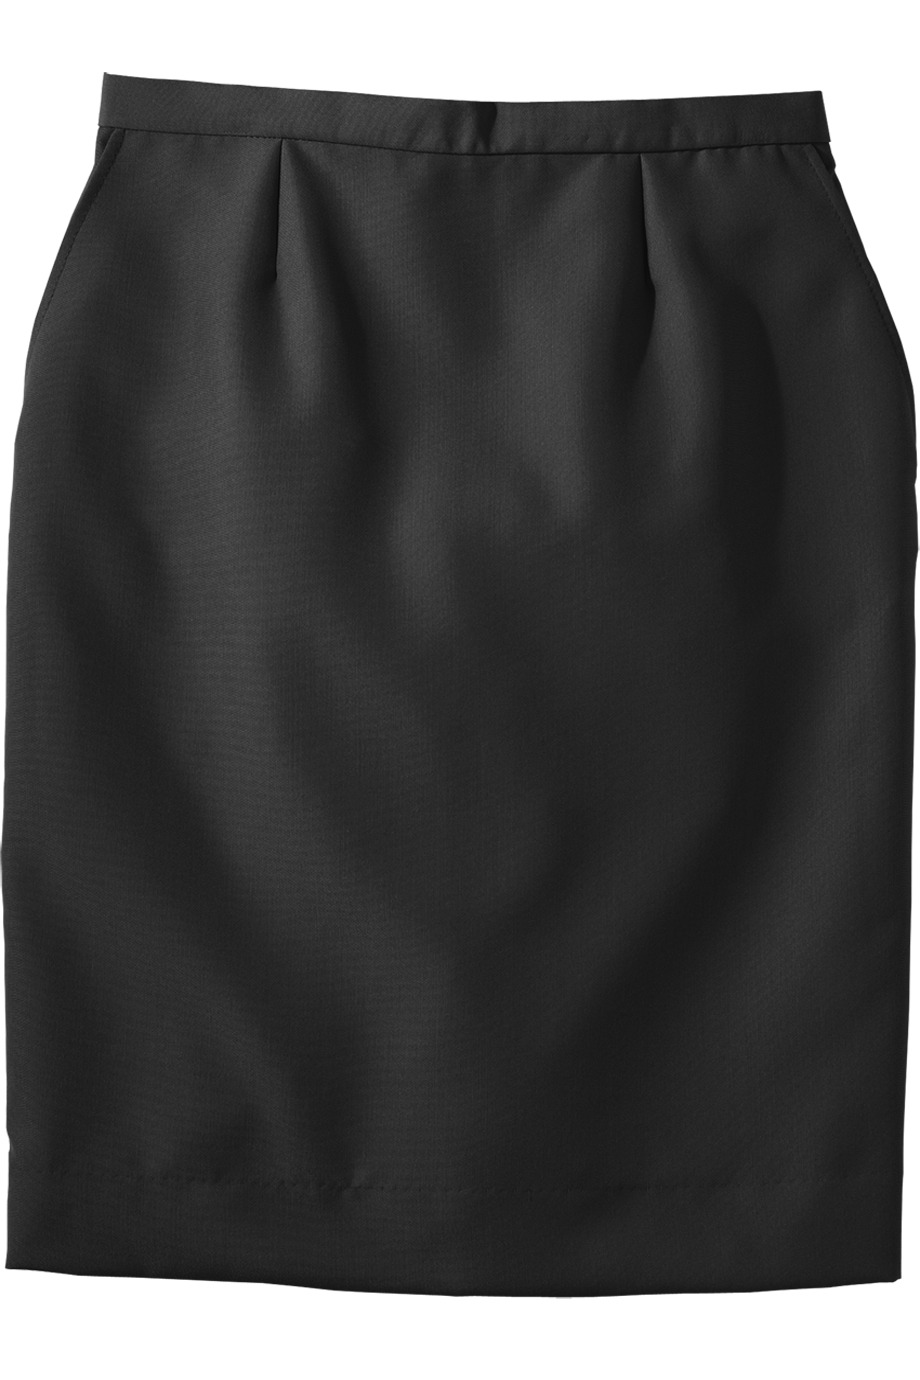 Edwards Garment 9721 - Women's Wshable Wool Blend Skirt